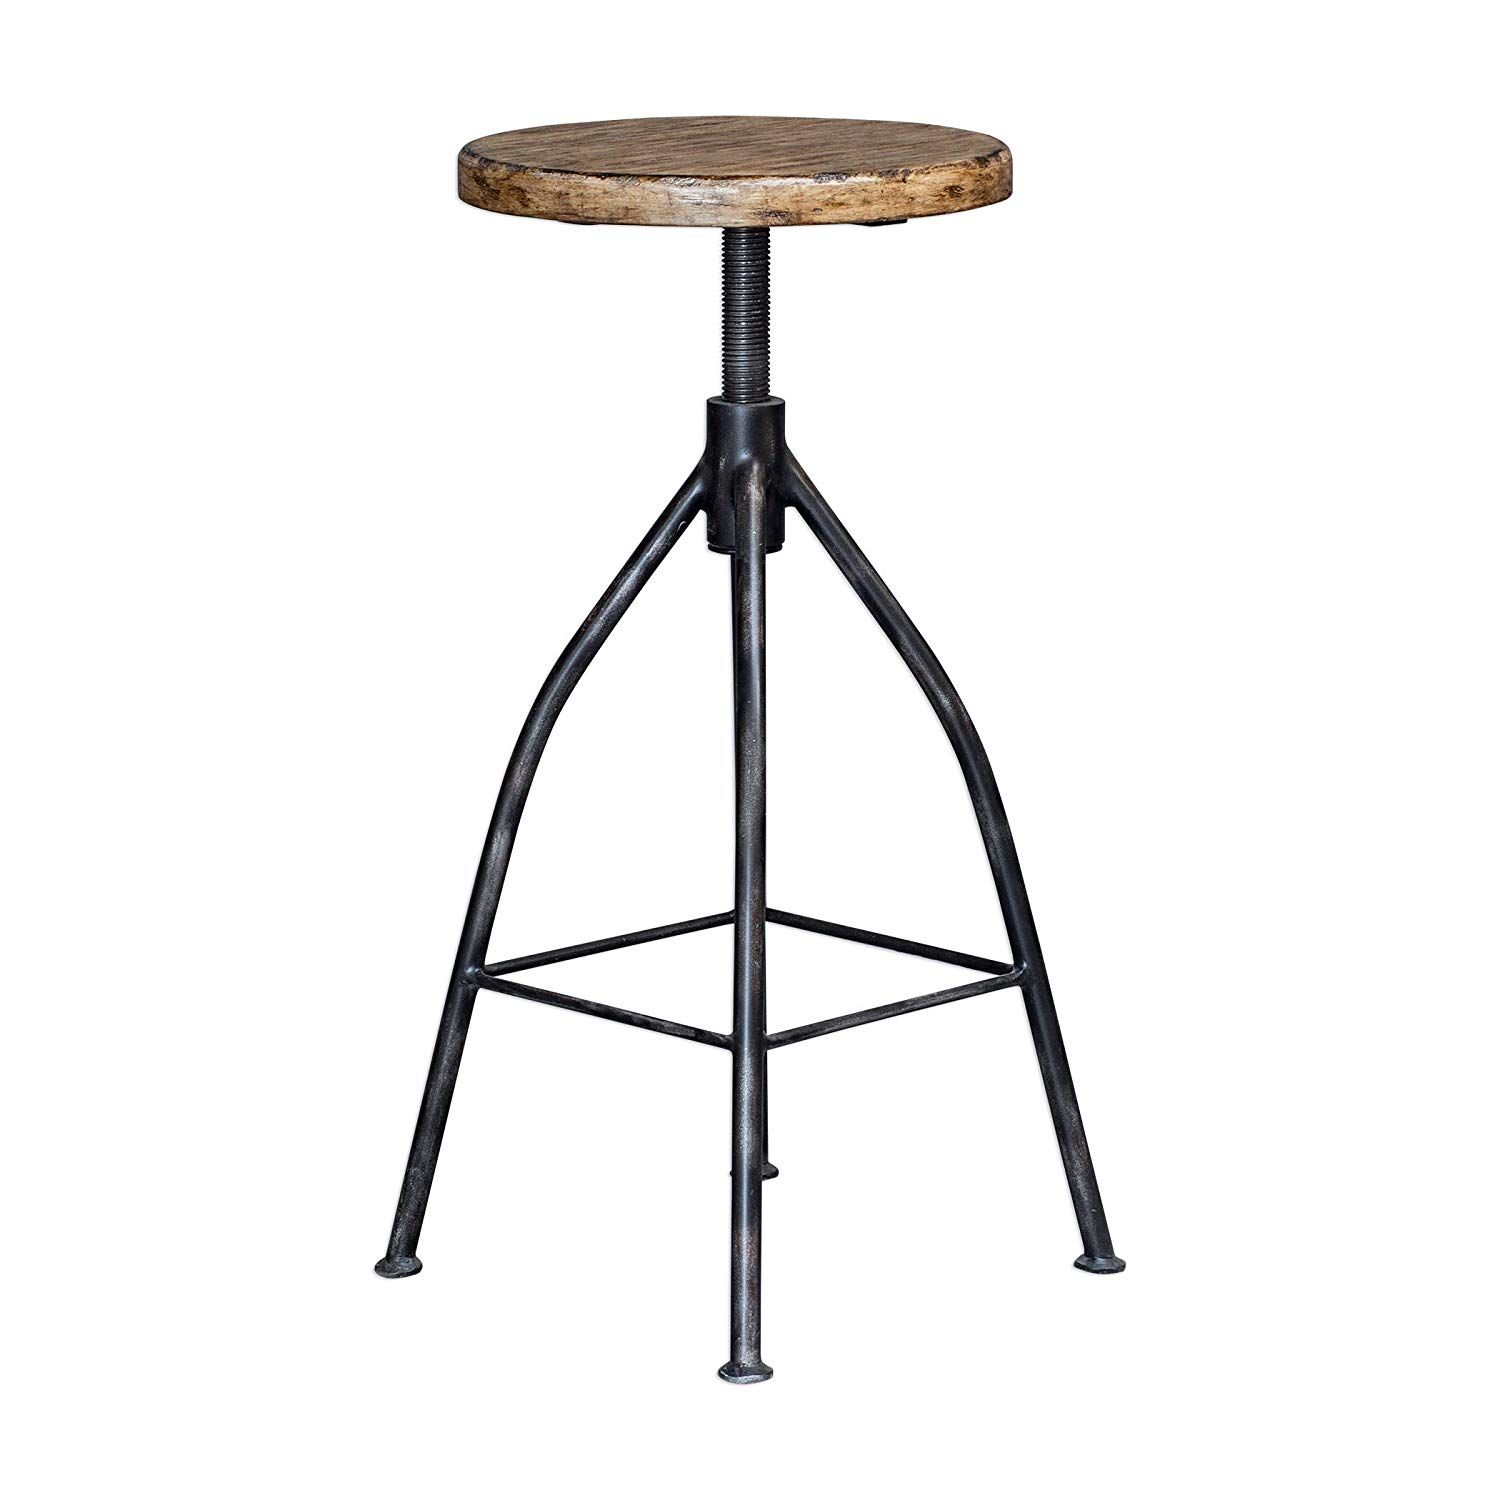 Miraculous My Swanky Home Industrial Vintage Style Round Pub Barstool Caraccident5 Cool Chair Designs And Ideas Caraccident5Info